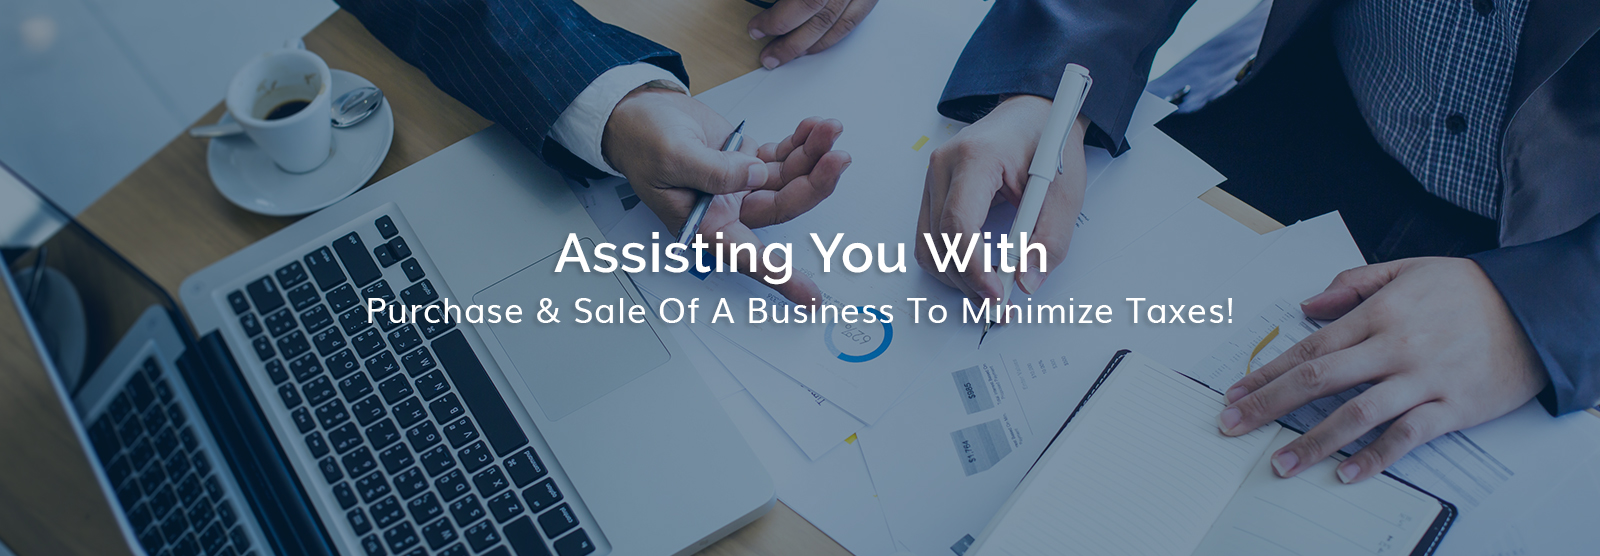 Assisting You With The Purchase & Sale Of A Business To Minimize Taxes